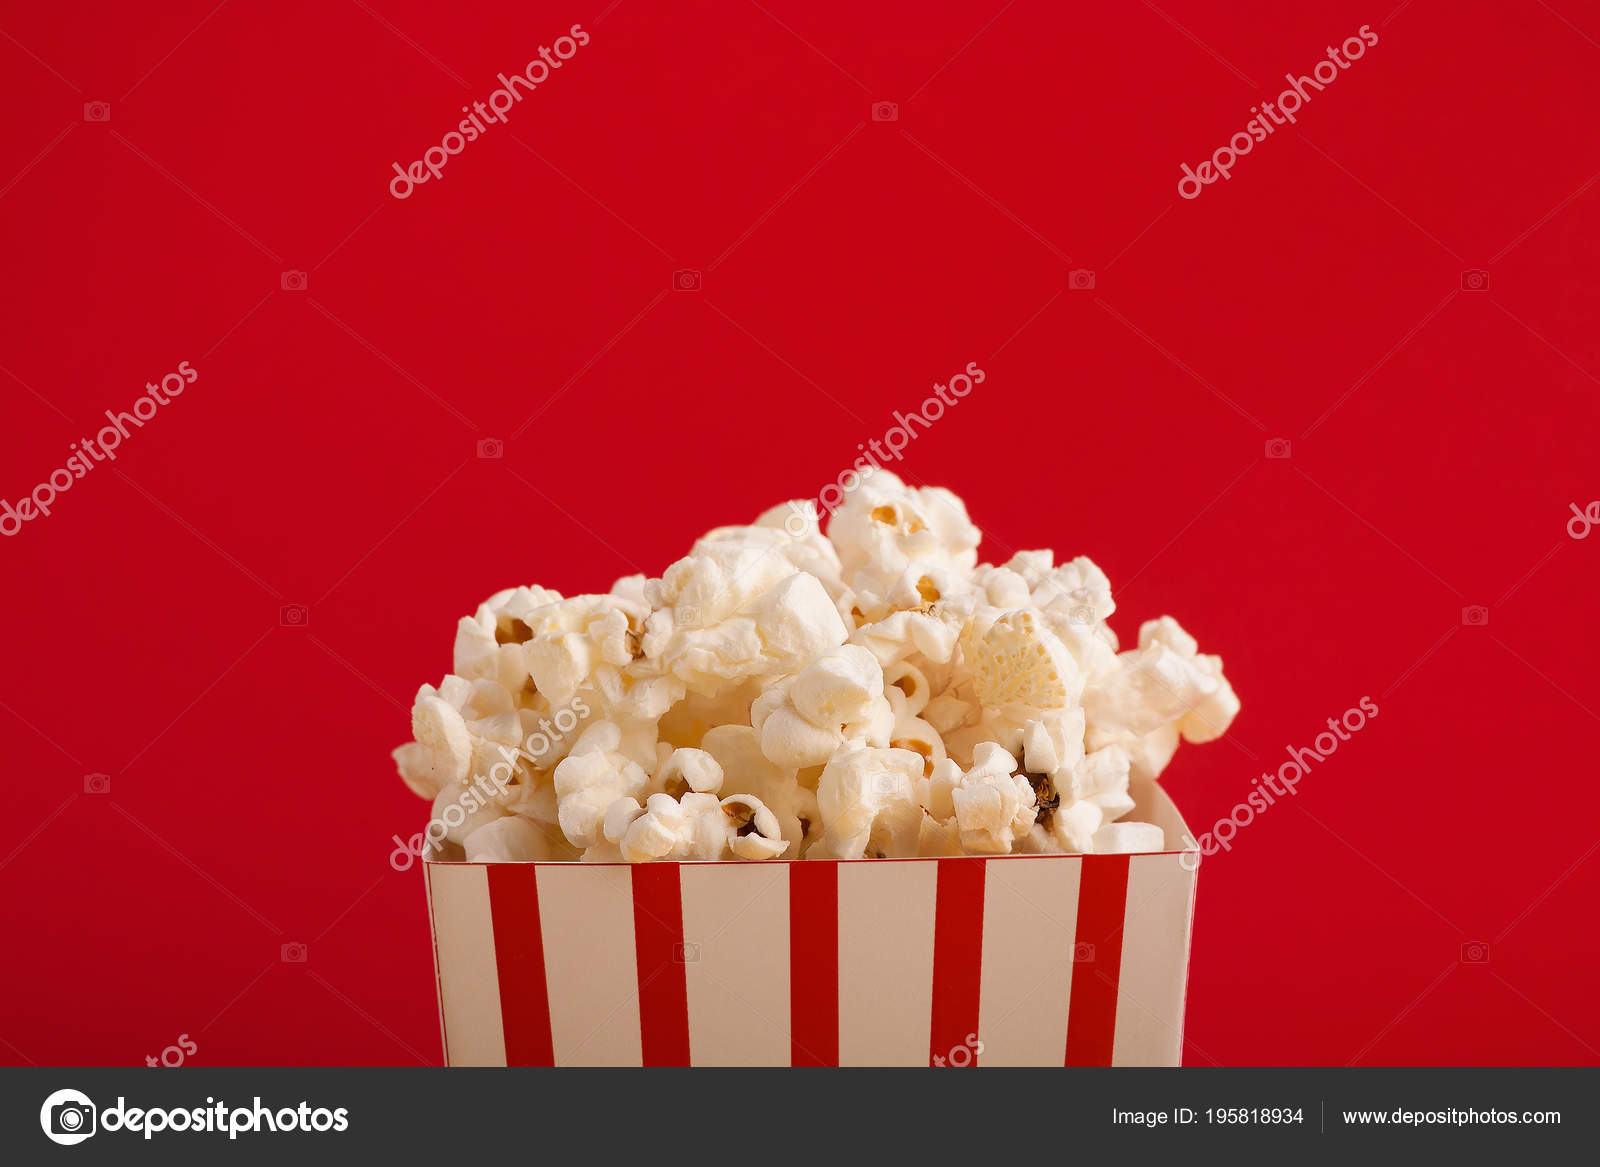 Bucket Of Popcorn On Red Background Stock Photo Image By C Milkos 195818934